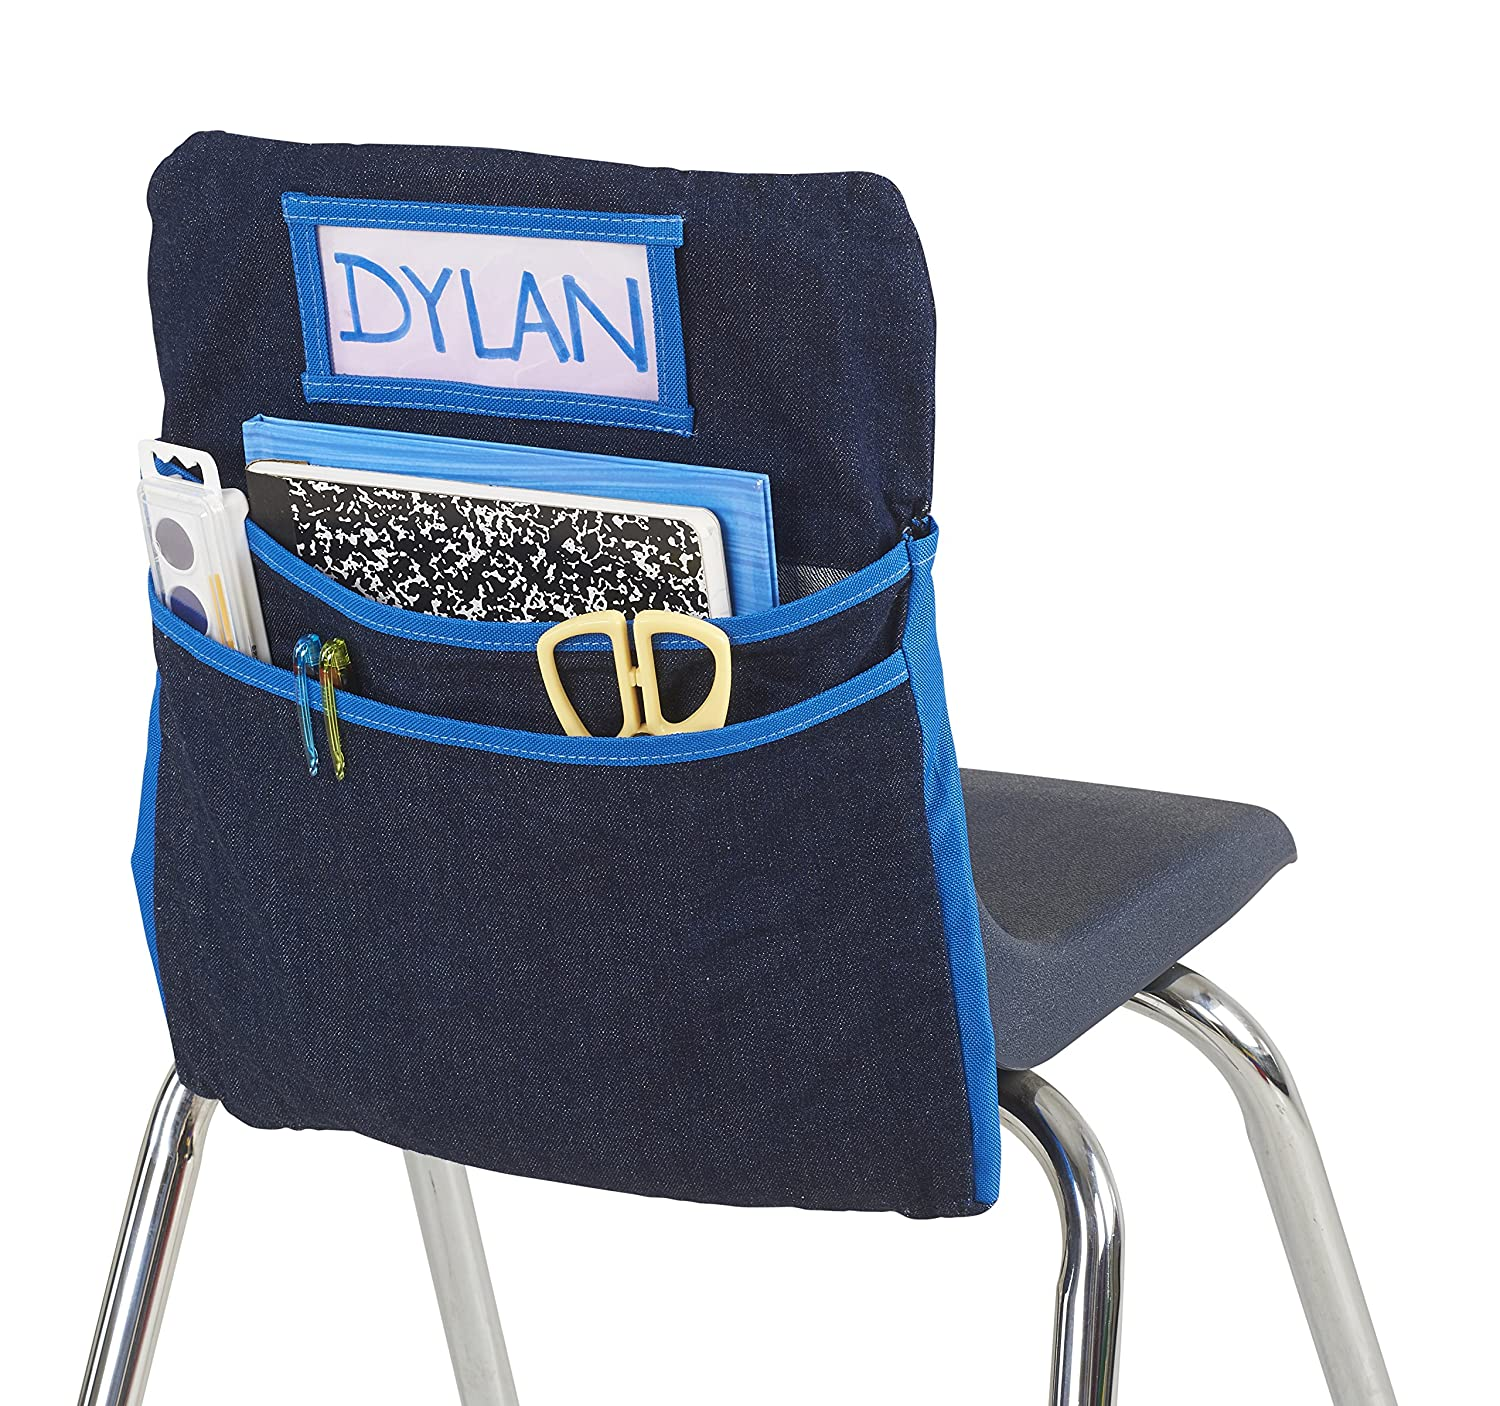 ECR4Kids Classroom Chair Seat panion Pocket Organizer with Name